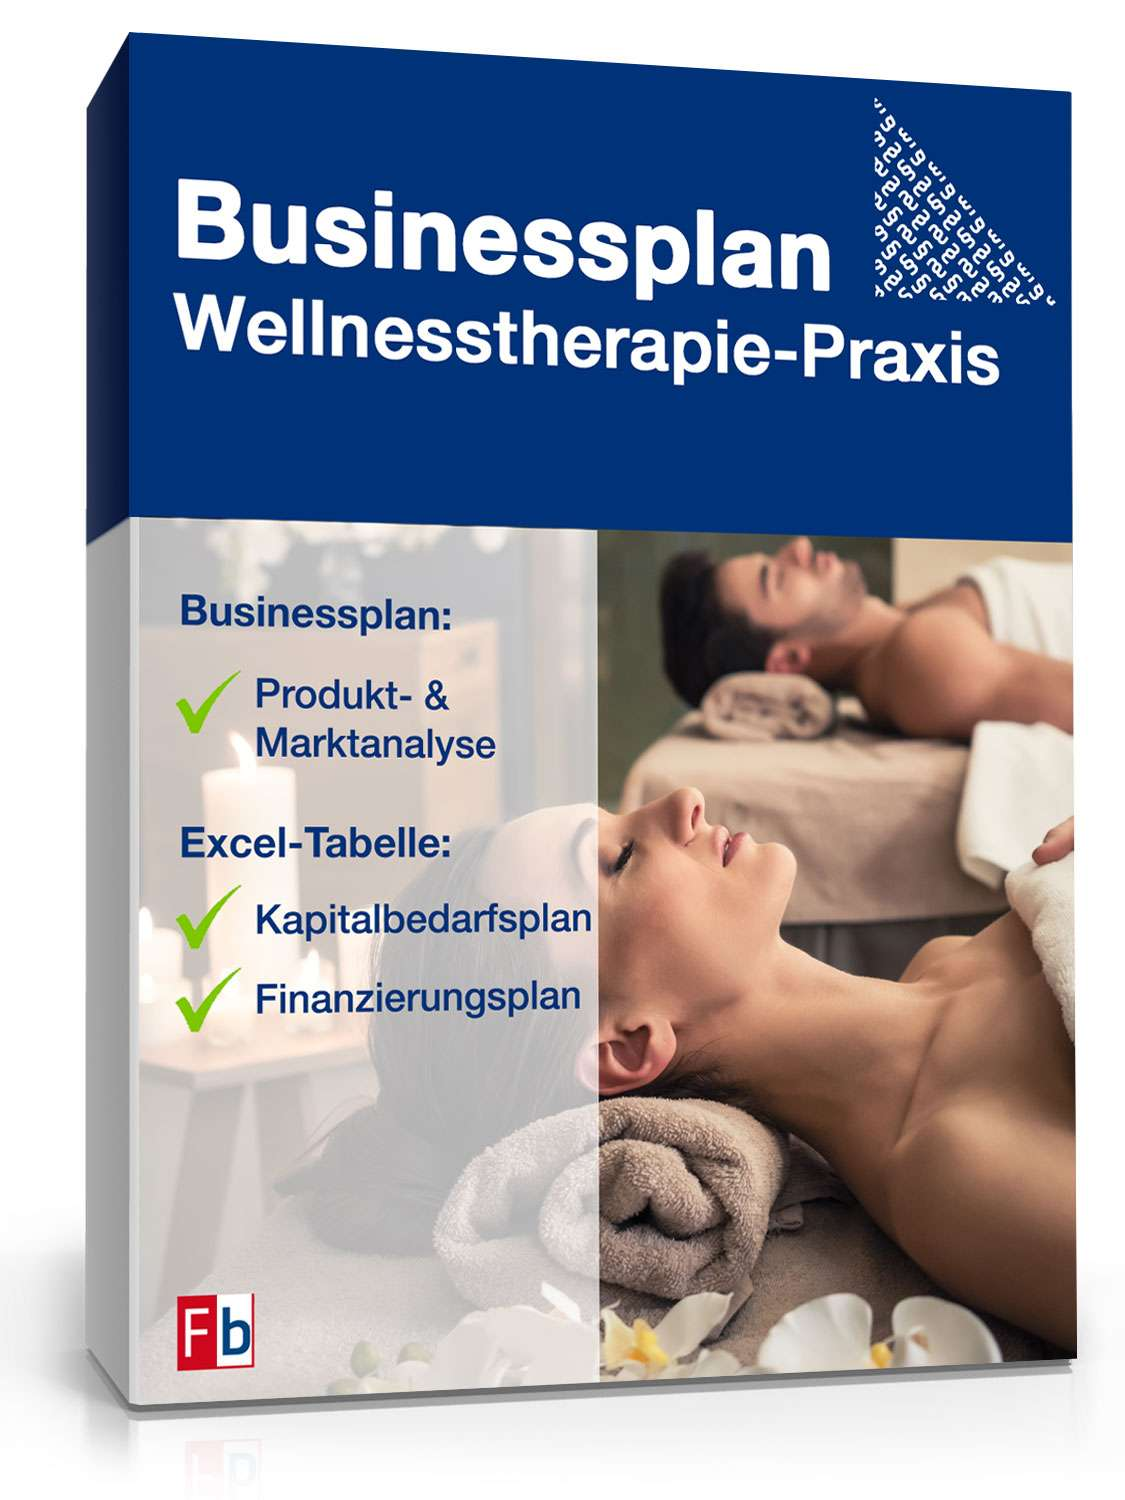 Businessplan Wellnesstherapie-Praxis